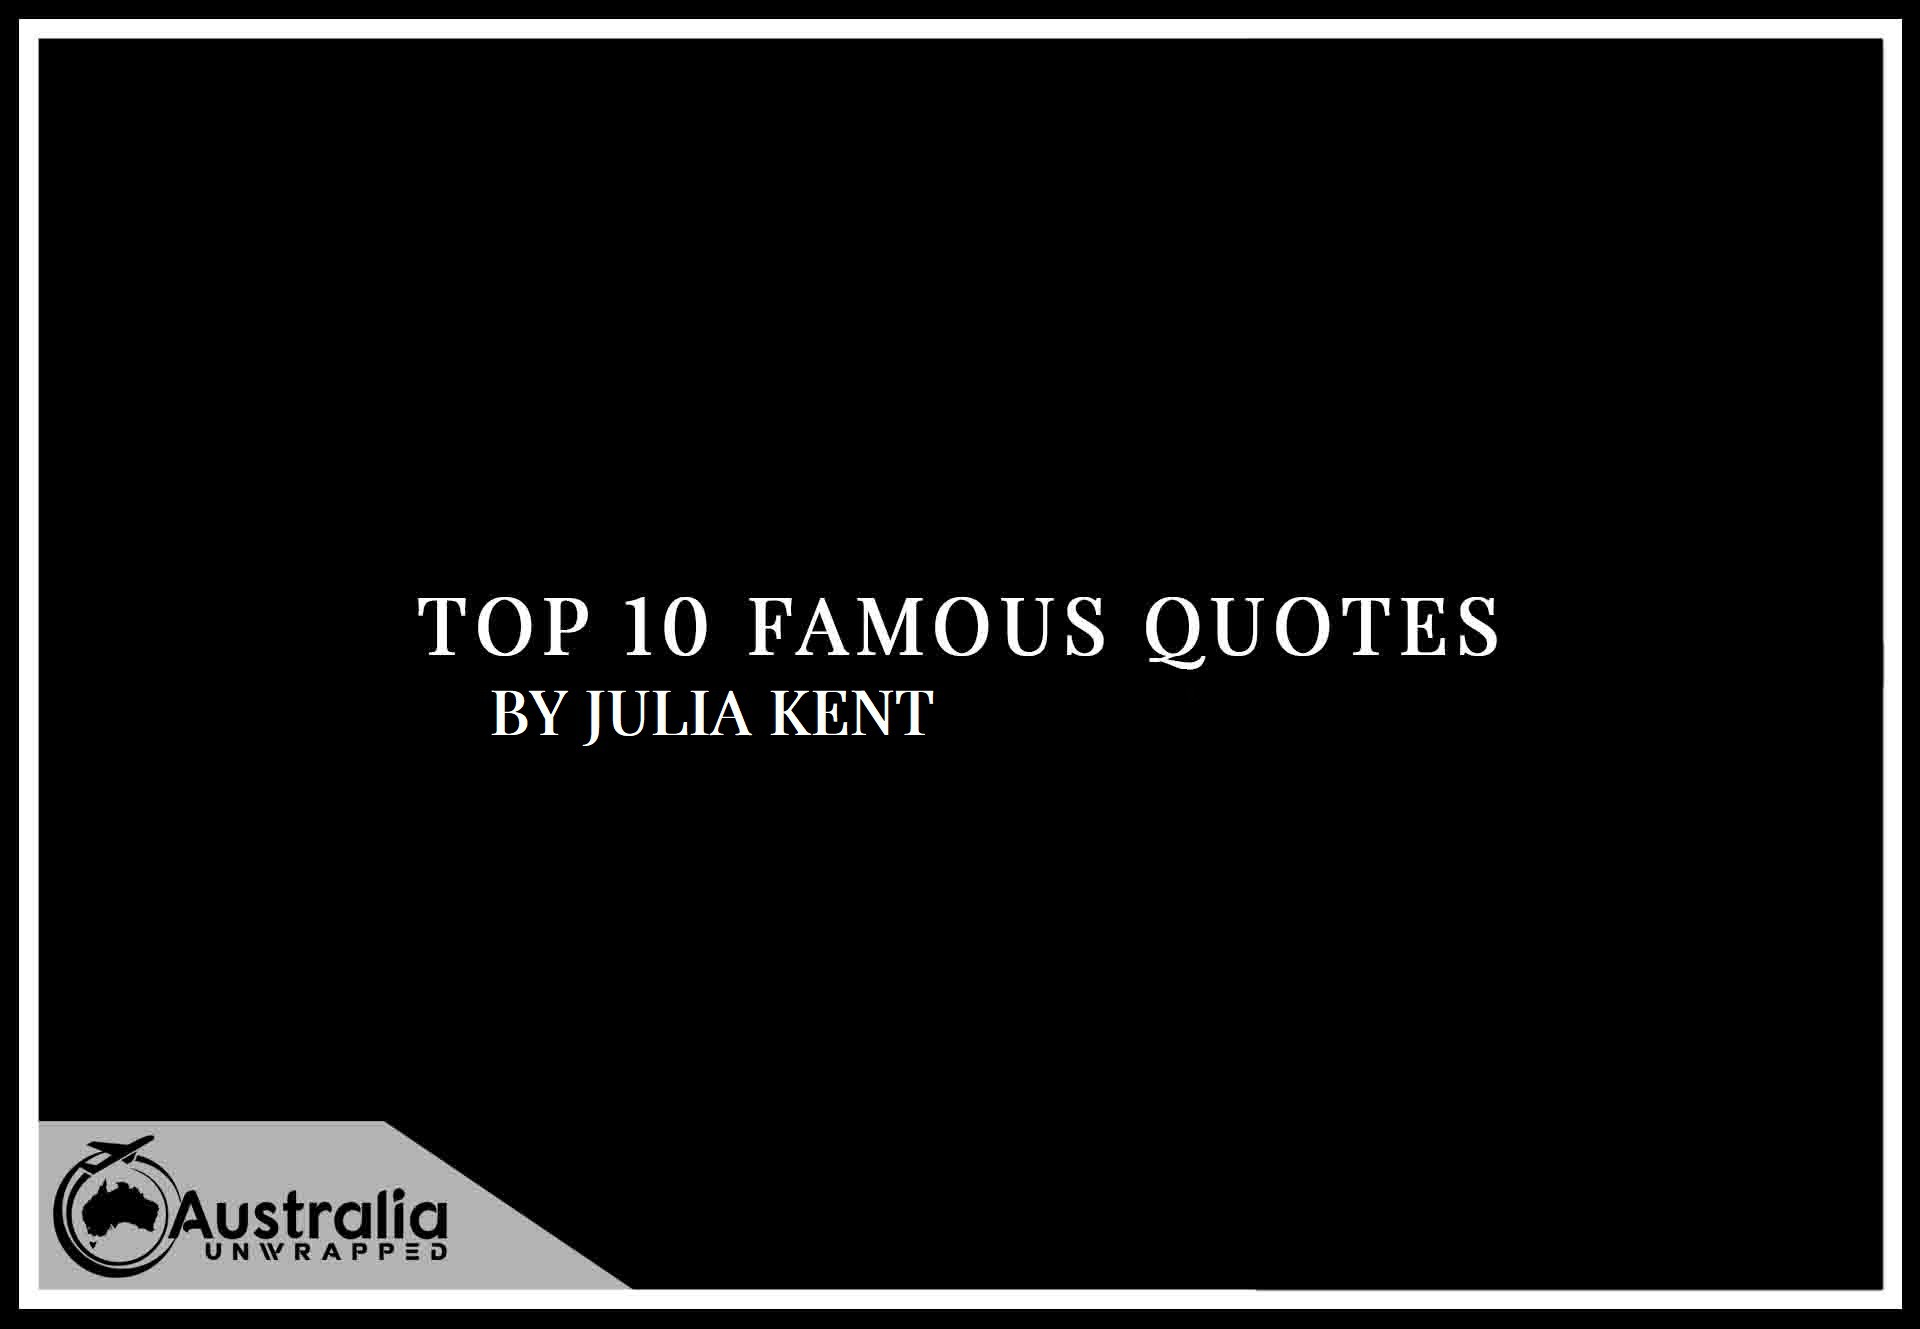 Top 10 Famous Quotes by Author Julia Kent